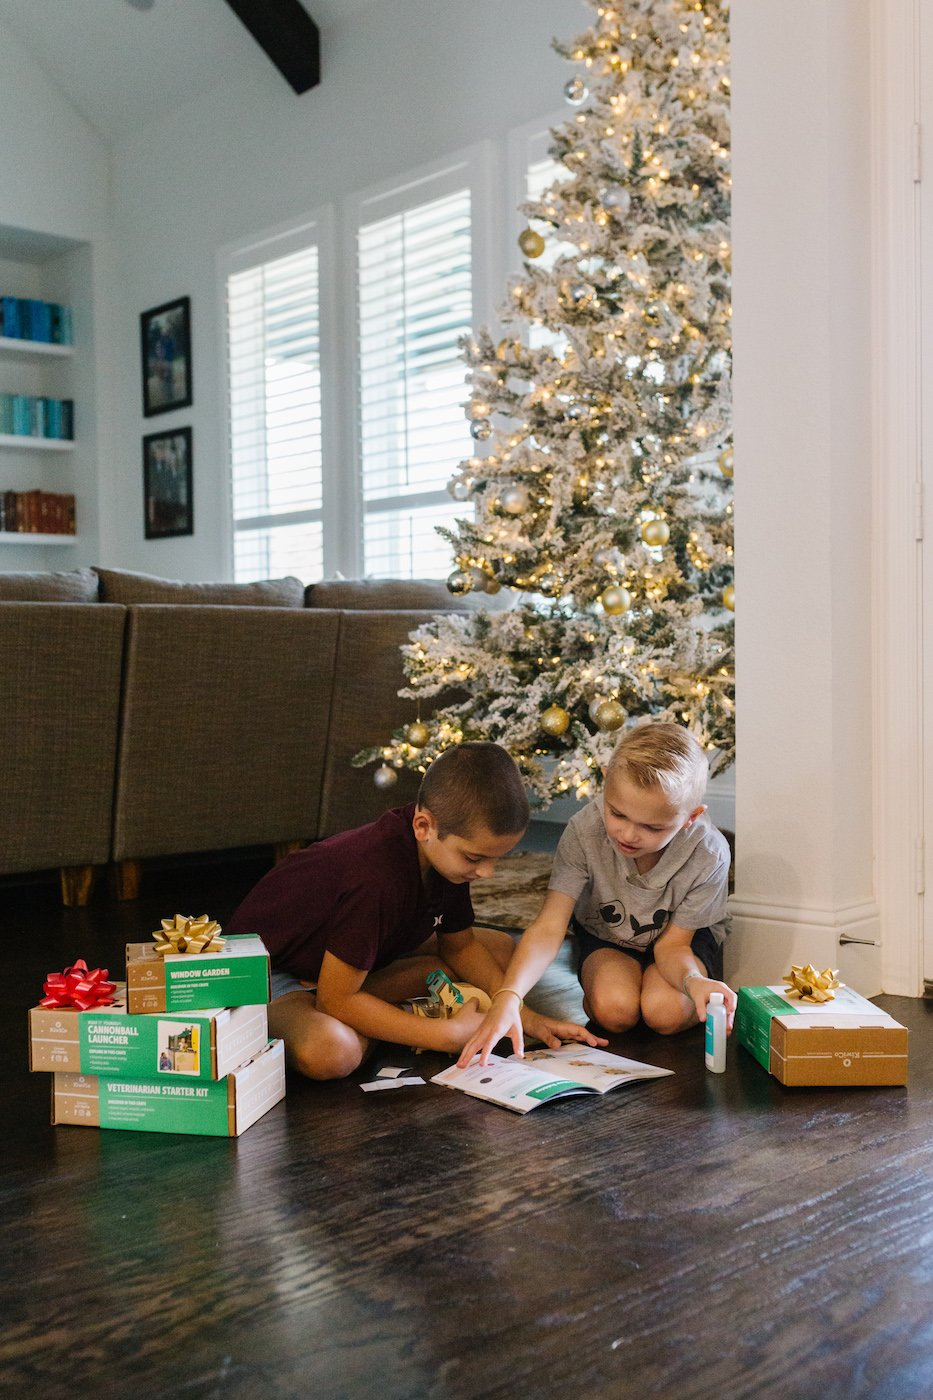 kiwi co boxes for kids make the best Christmas gifts!